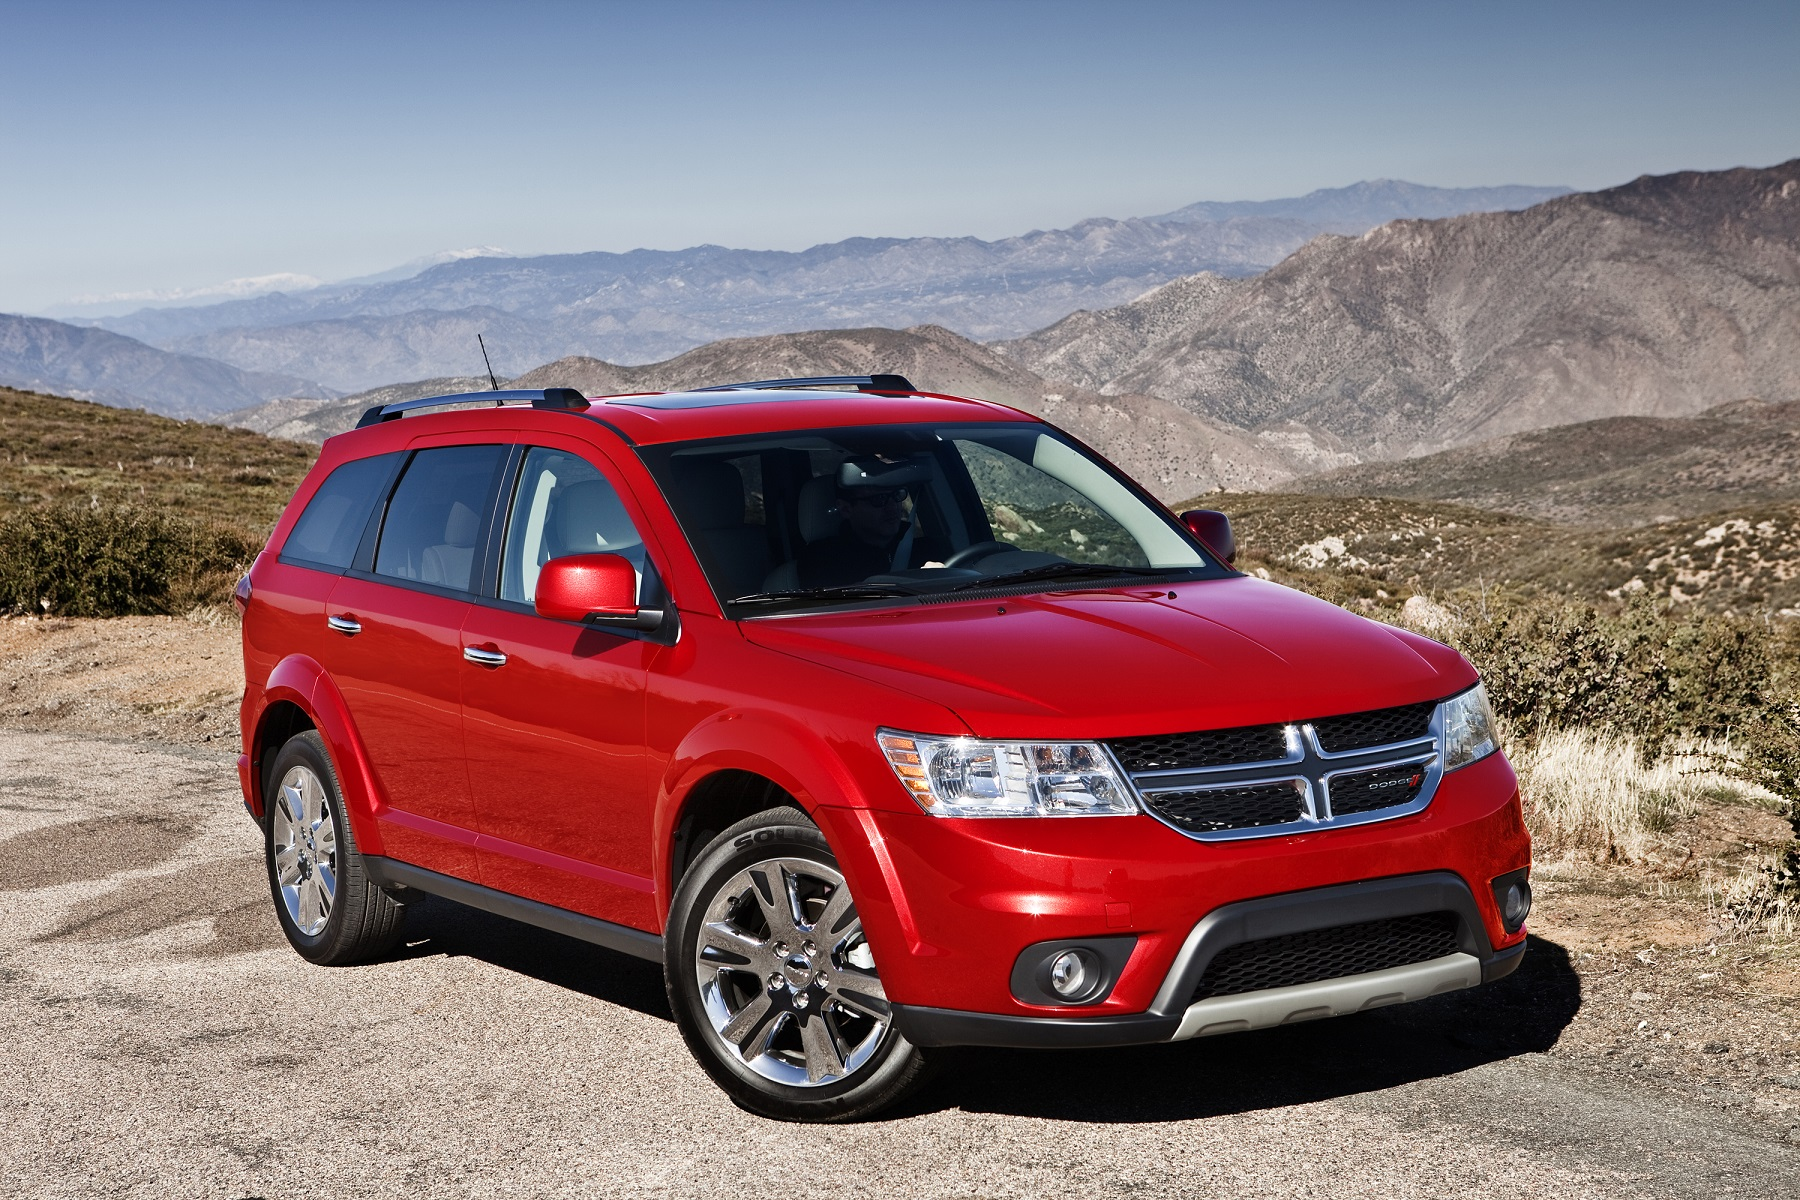 Manufacturer photo: The 2014 Dodge Journey's chassis architecture delivers a confidence-inspiring driving experience coupled with precise steering for maximum control